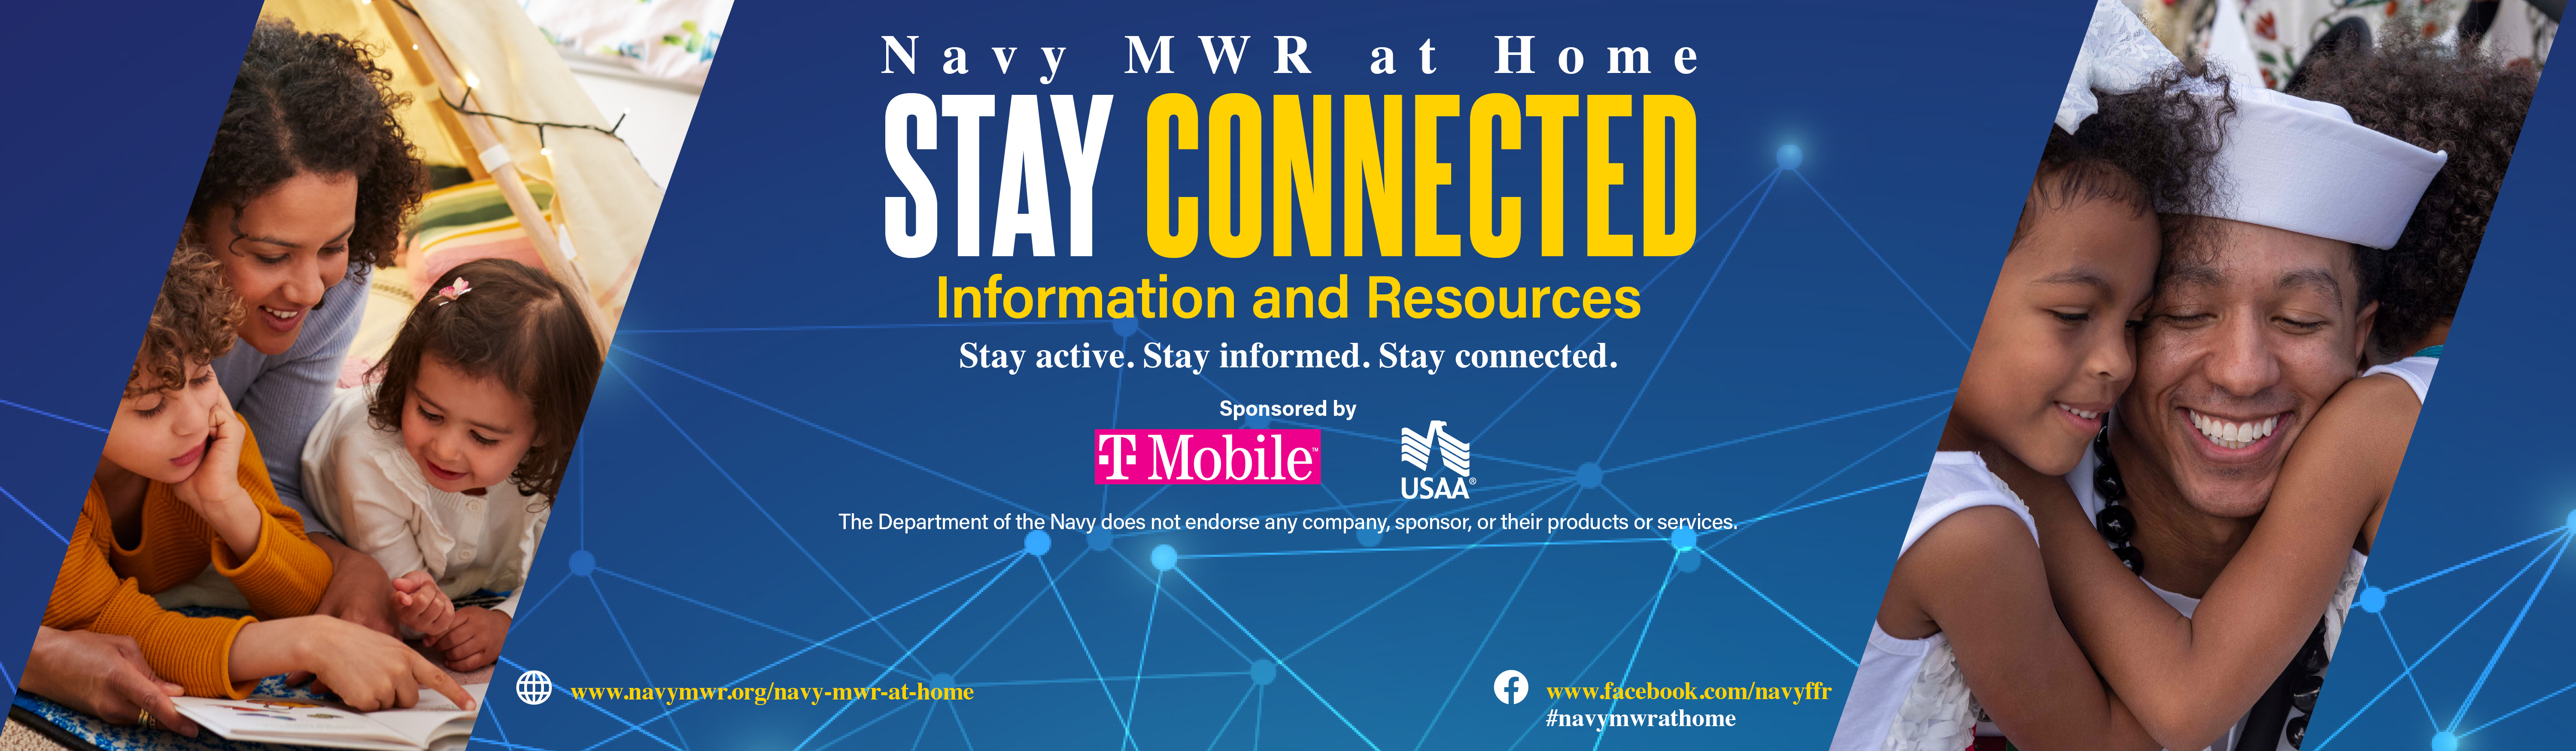 Navy MWR at Home_Stay Connected-web-bnnr-Sponsors3.jpg